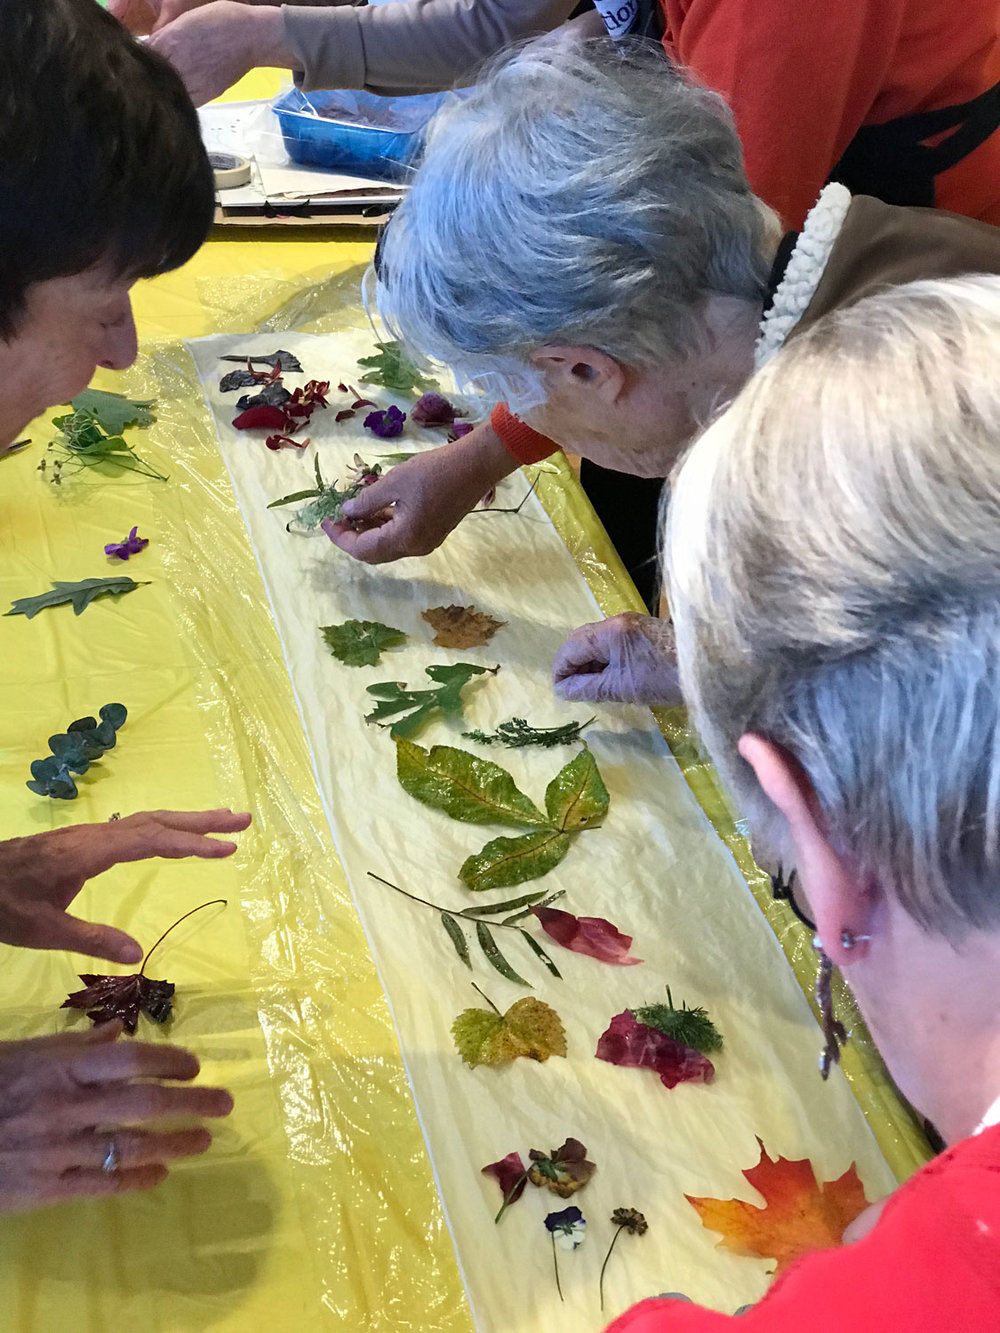 Placing-Leaves-on-Fabric.jpg